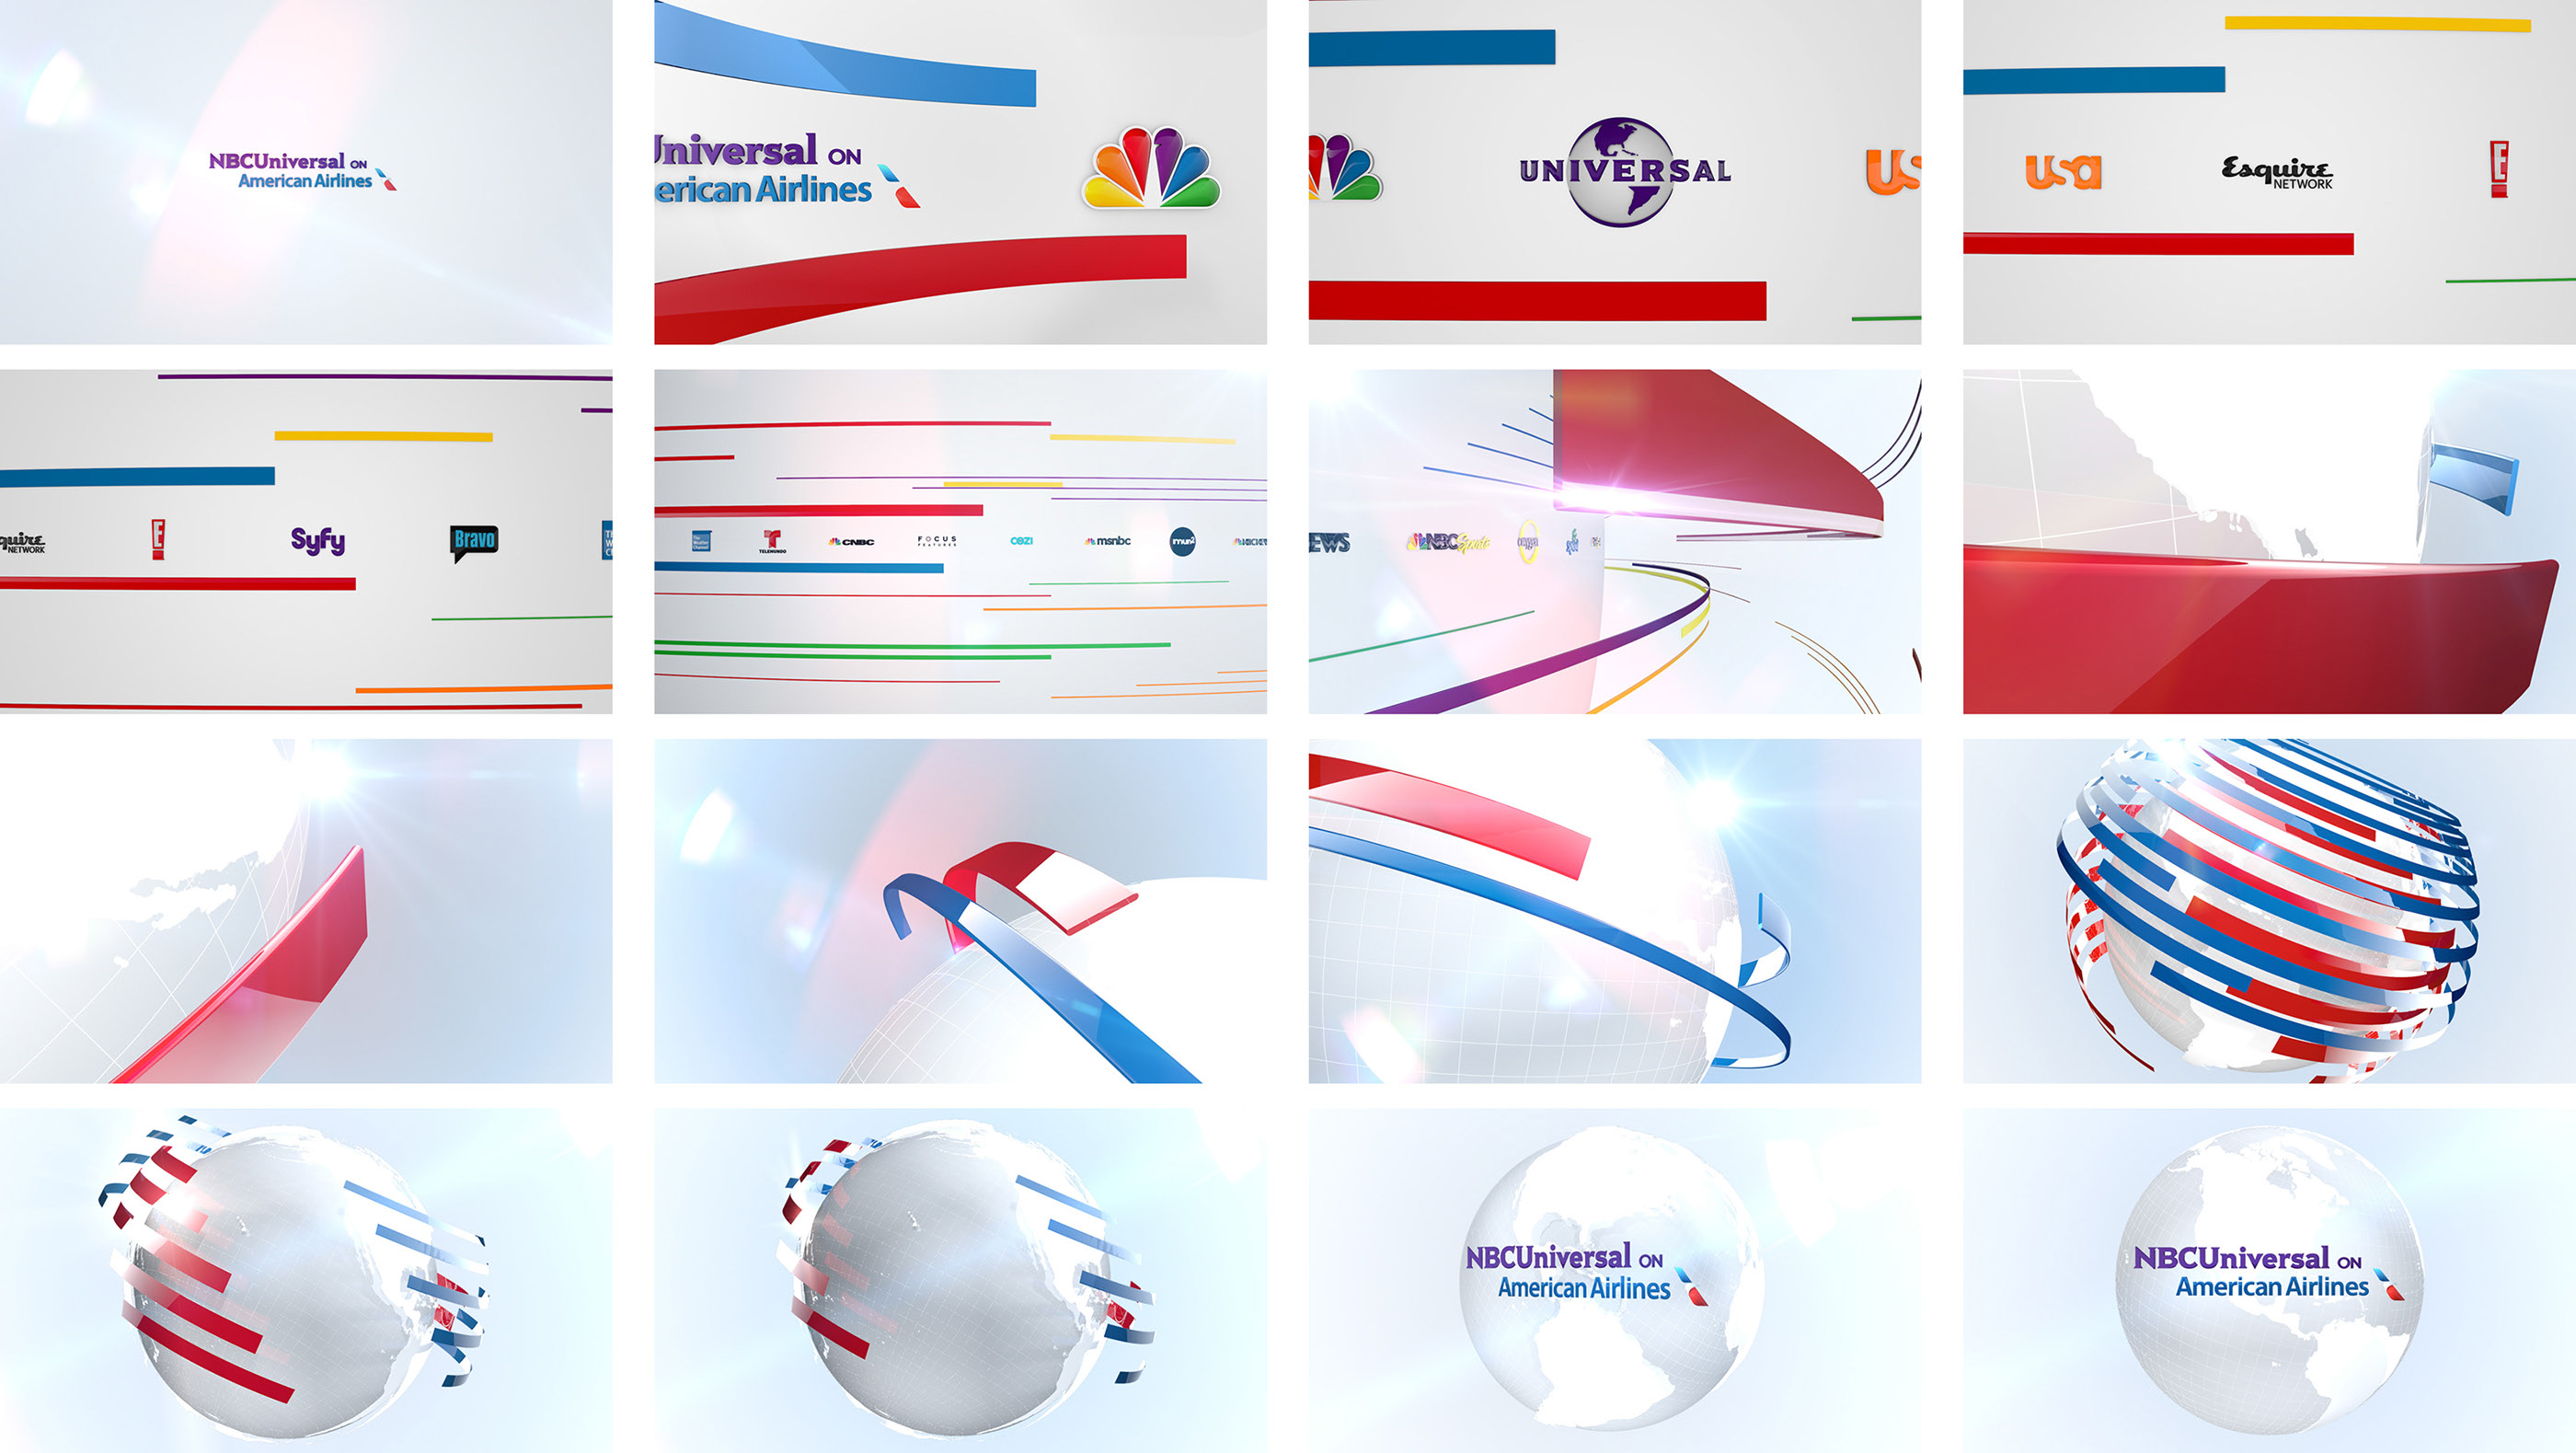 NBCUniversal on American Airlines | In-Flight Graphics on